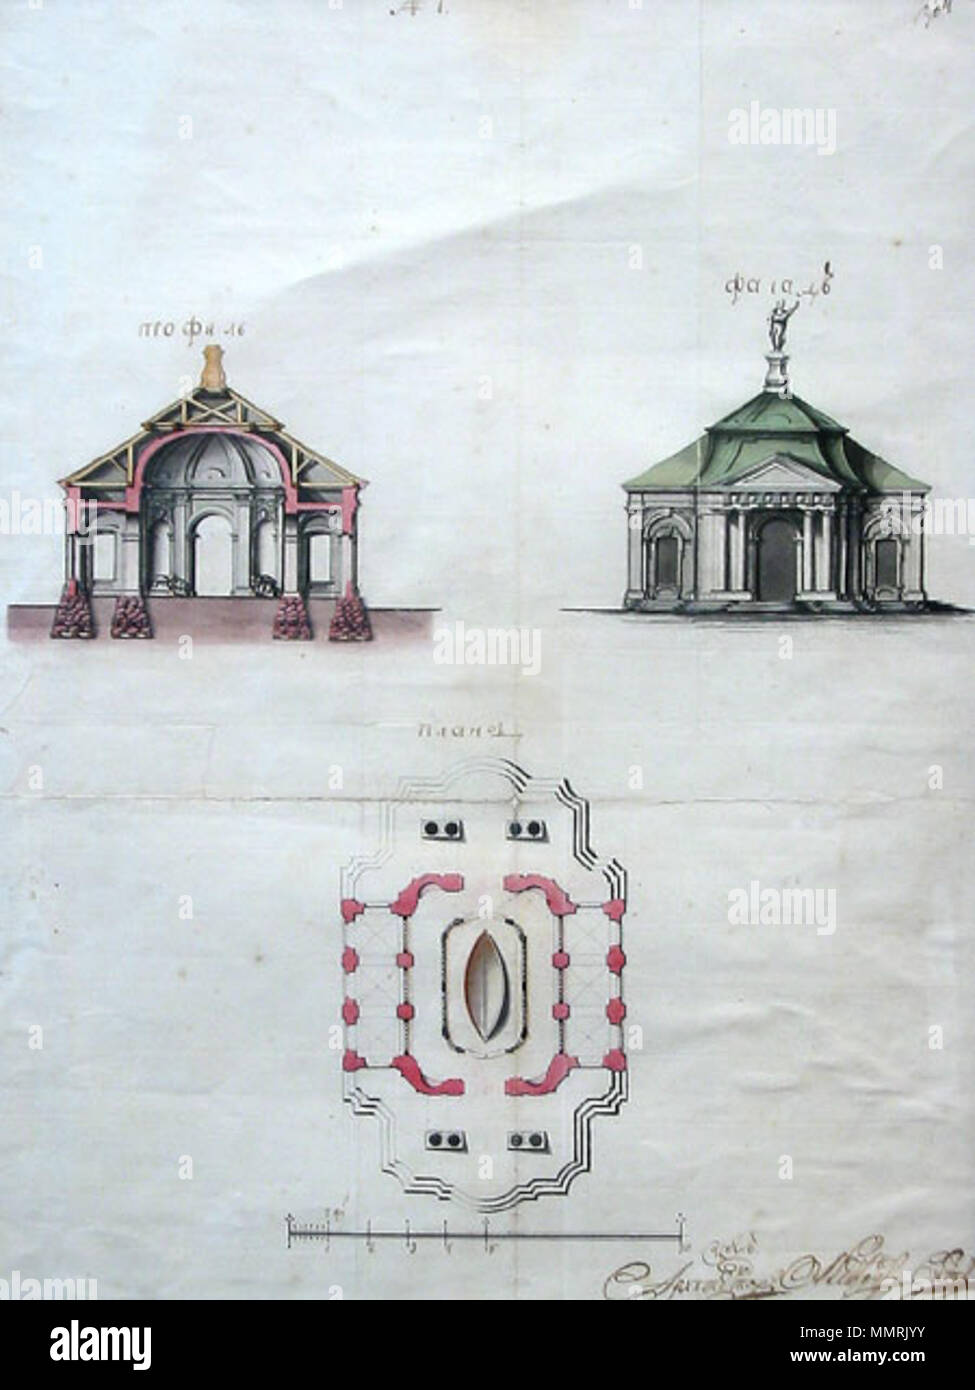 . English: The project of stone pavilion for Boats of Peter I storage in Peter & Paul Fortress territory. 1761. year plan of the peter and paul fortress in Saint Petersburg. The plan, facade, section. Architect A.F.Wist. A watercolour. Russian State Archive of Ancient Acts (in Moscow). Русский: Проект каменного павильона для хранения Ботика Петра I на территории Петропавловской крепости. 1761 г., План, фасад, разрез. Архитектор А.Ф. Вист. Акварель. РГАДА.  . 1761. Alexander Franzevich Wist (1721(2)—1794?) Boat House project by Wist 1761 - Stock Image